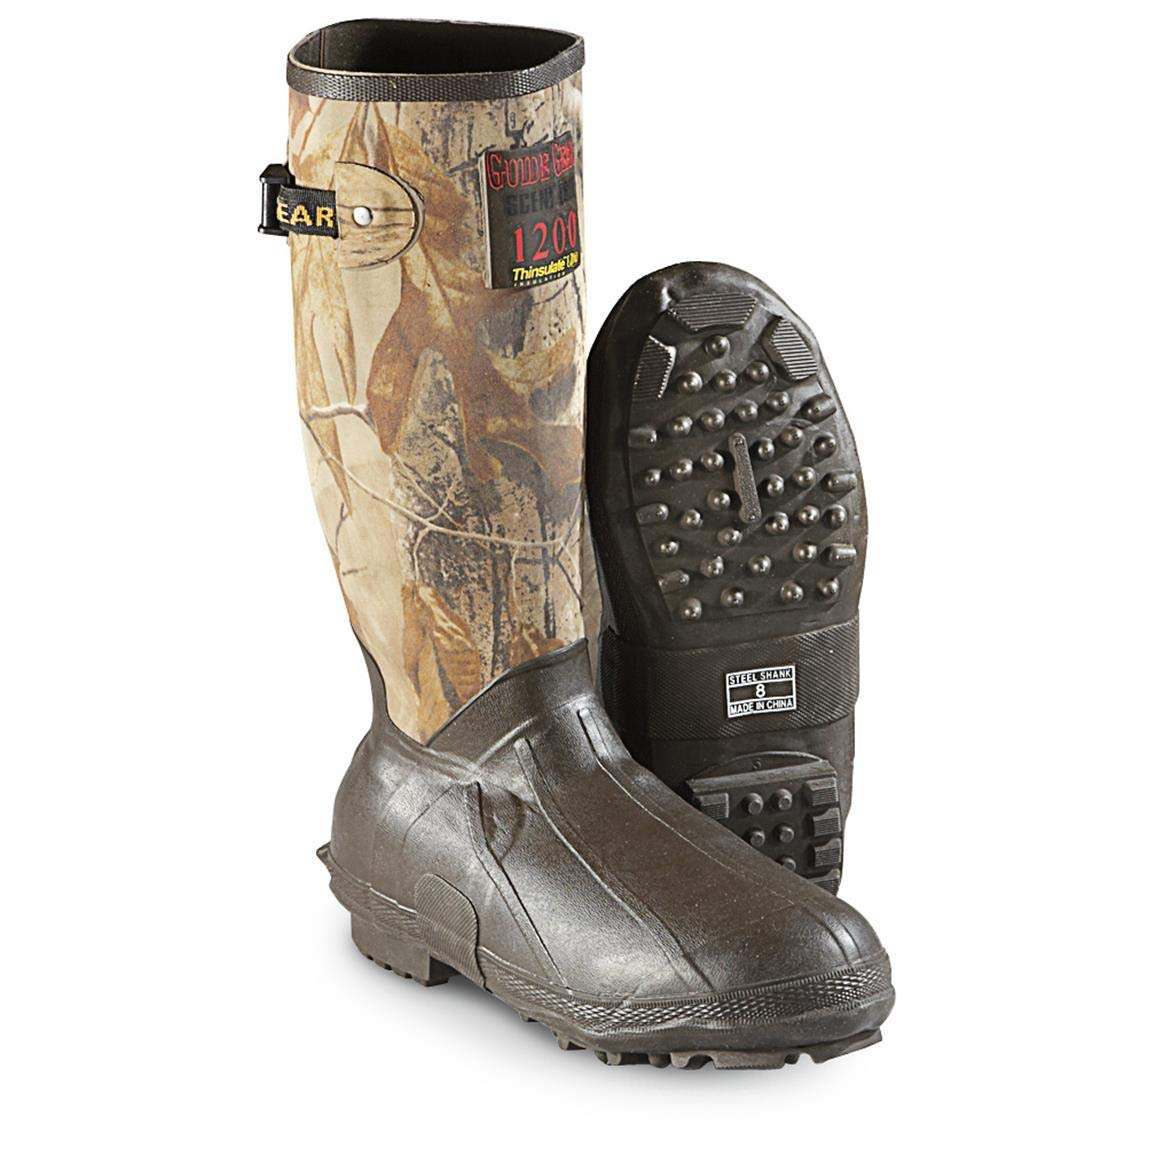 reputable site 3afbc 6cc27 Cheap Guide Gear Boots, find Guide Gear Boots deals on line ...